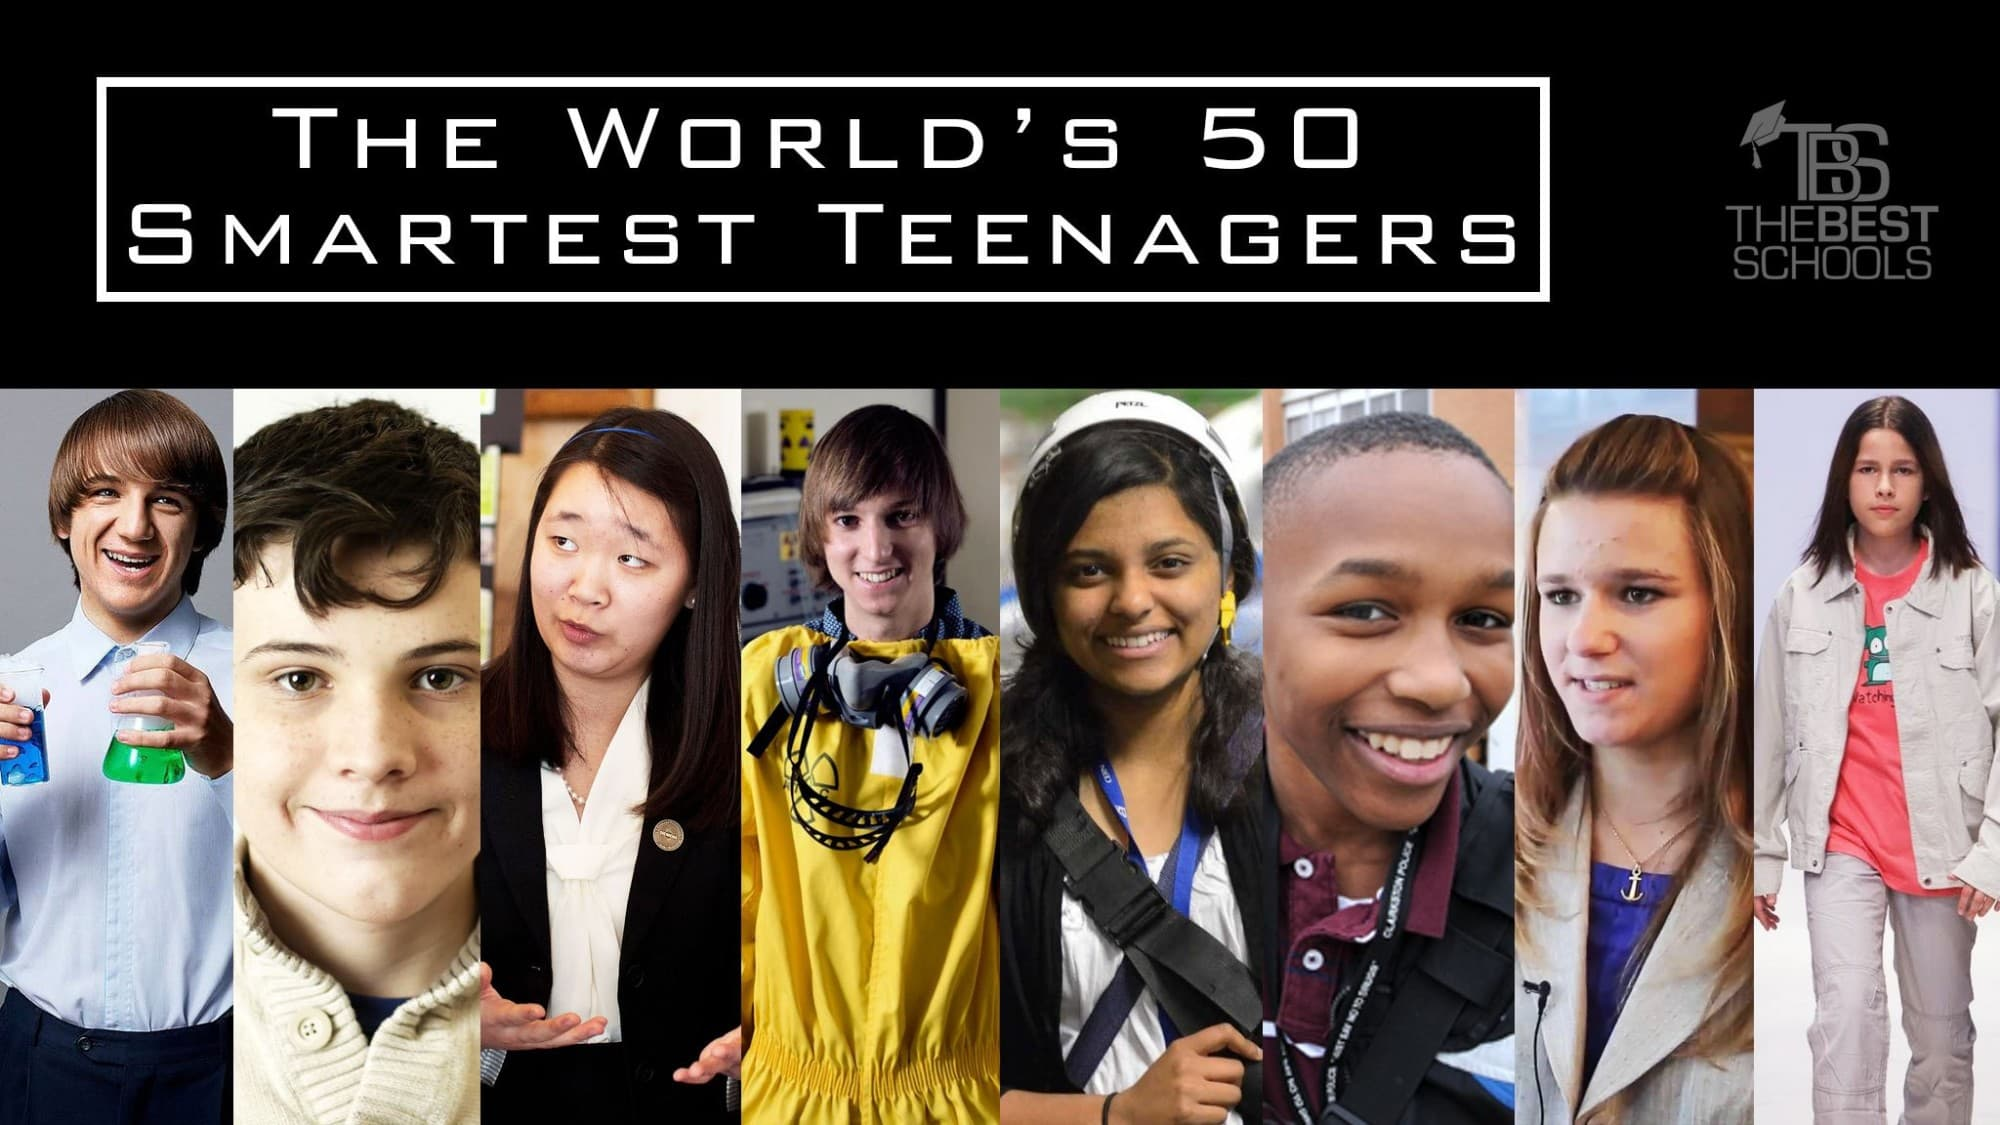 The Worlds 50 Smartest Teenagers